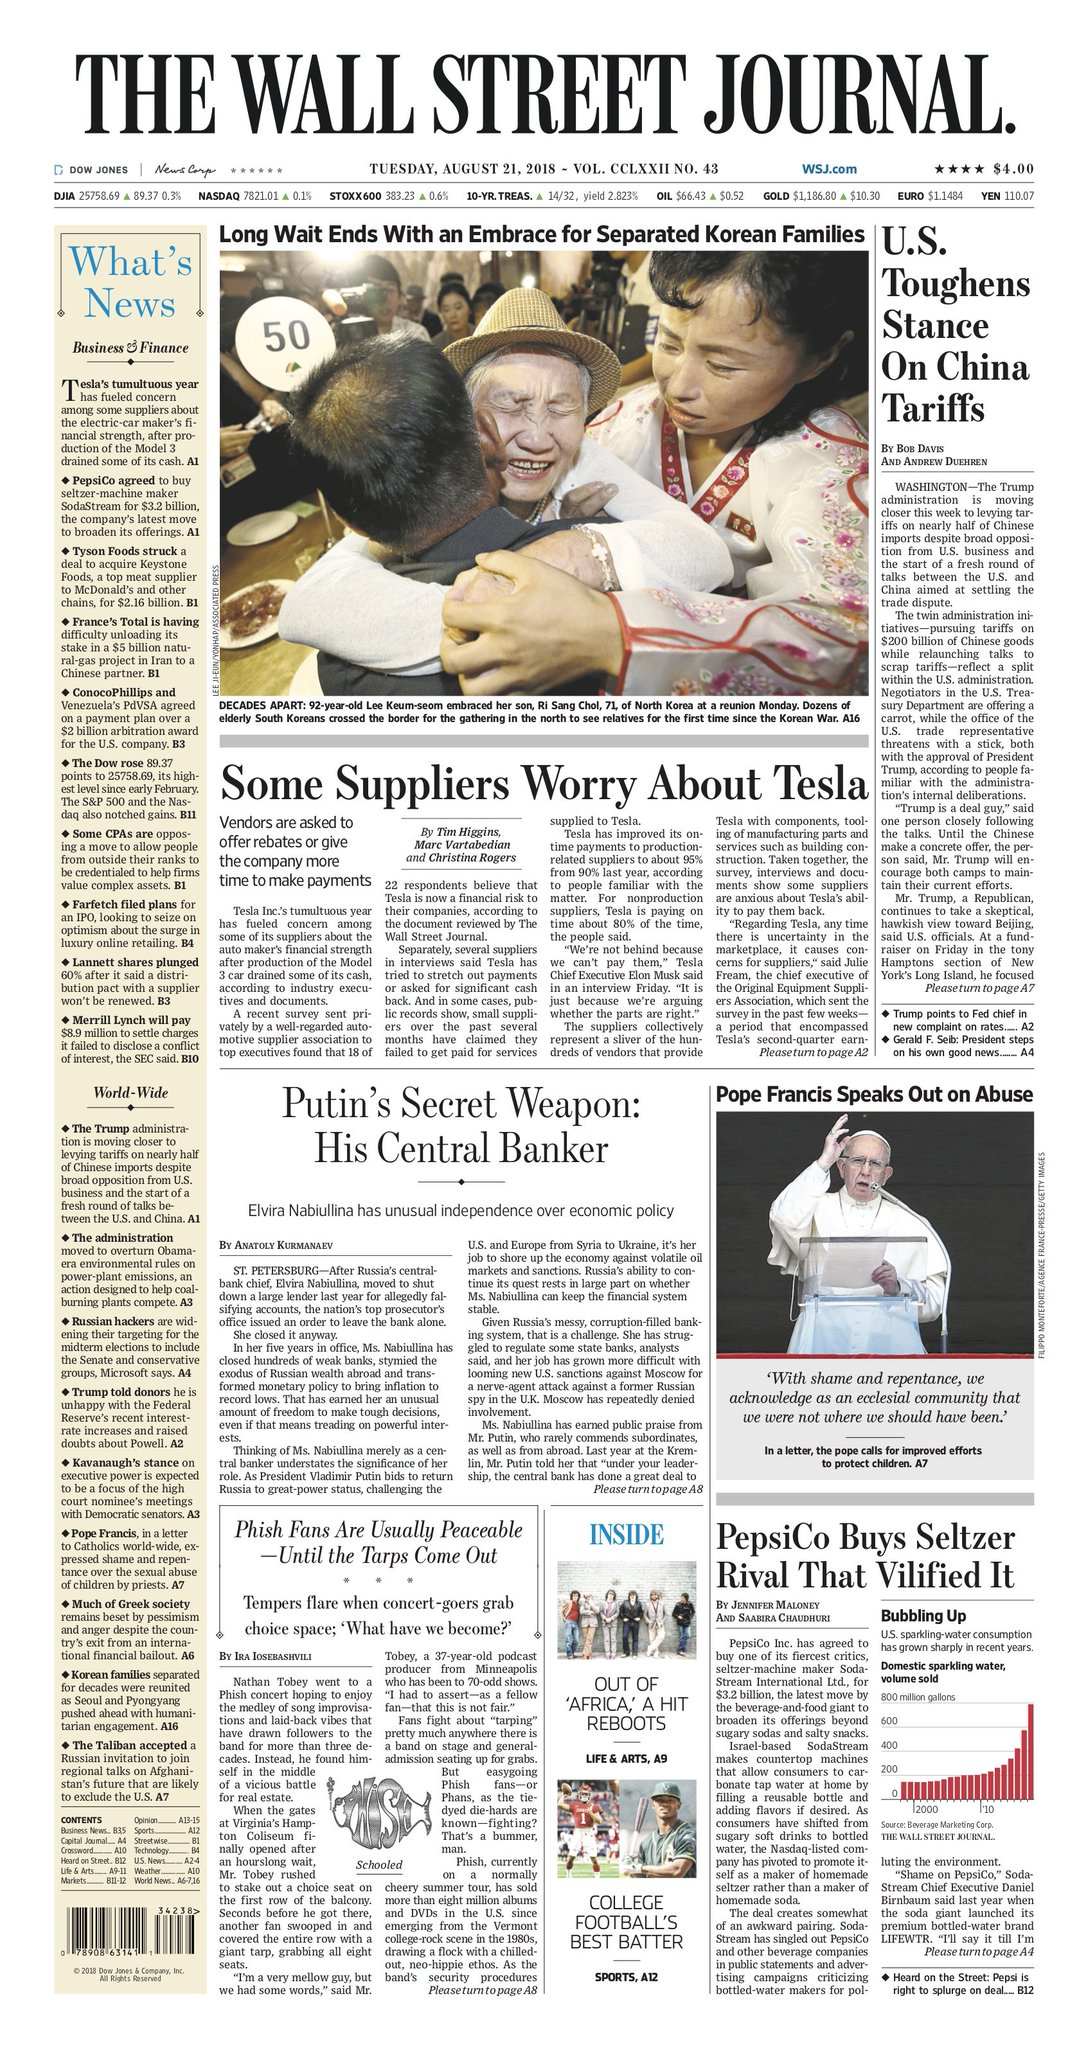 Take an early look at the front page of The Wall Street Journal https://t.co/5xQPDPcm8q https://t.co/14p5rbhBos